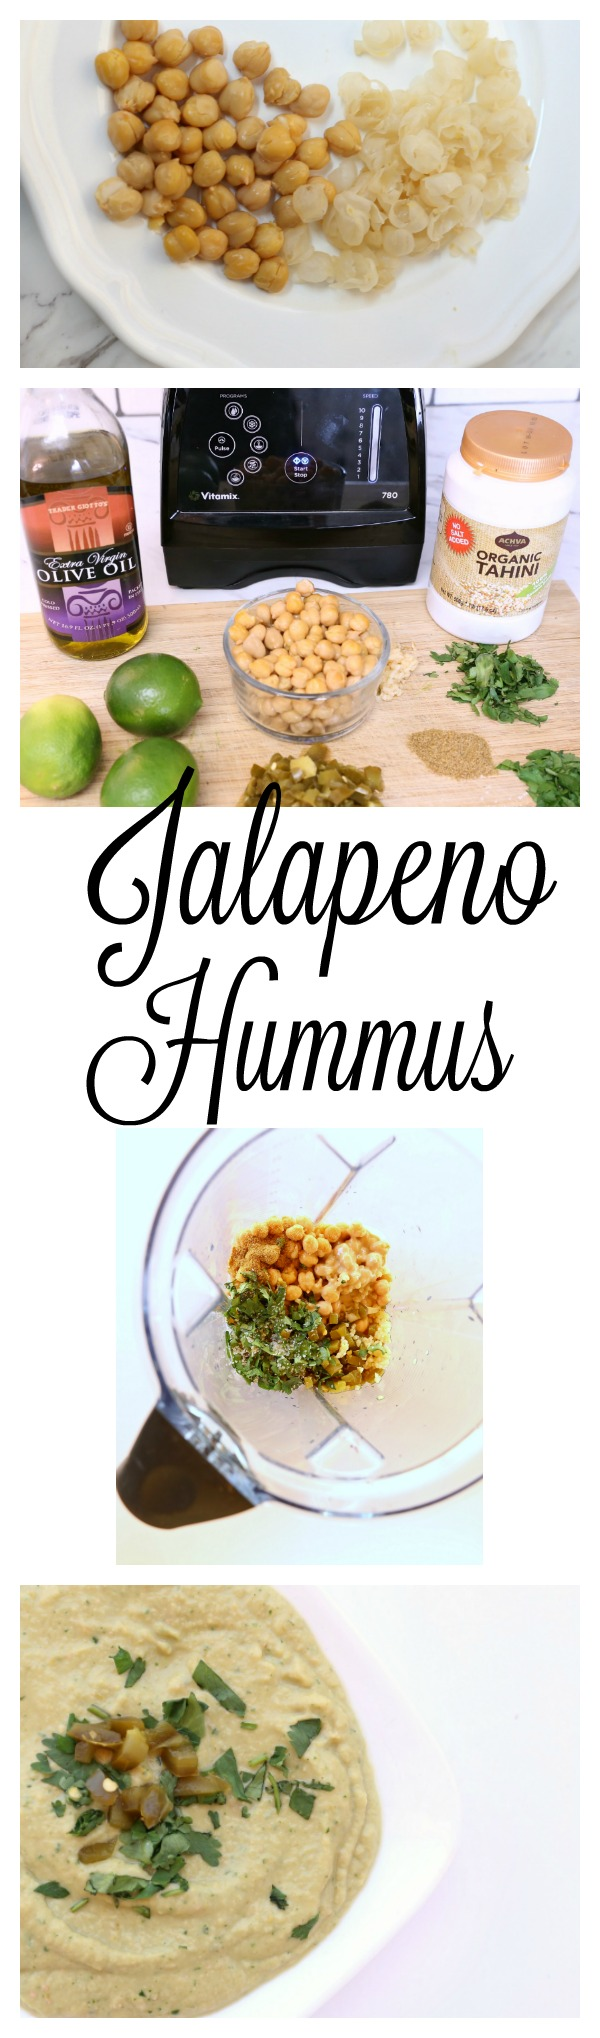 This is such a yummy Jalapeno Hummus Recipe! A must try for sure. classyclutter.net